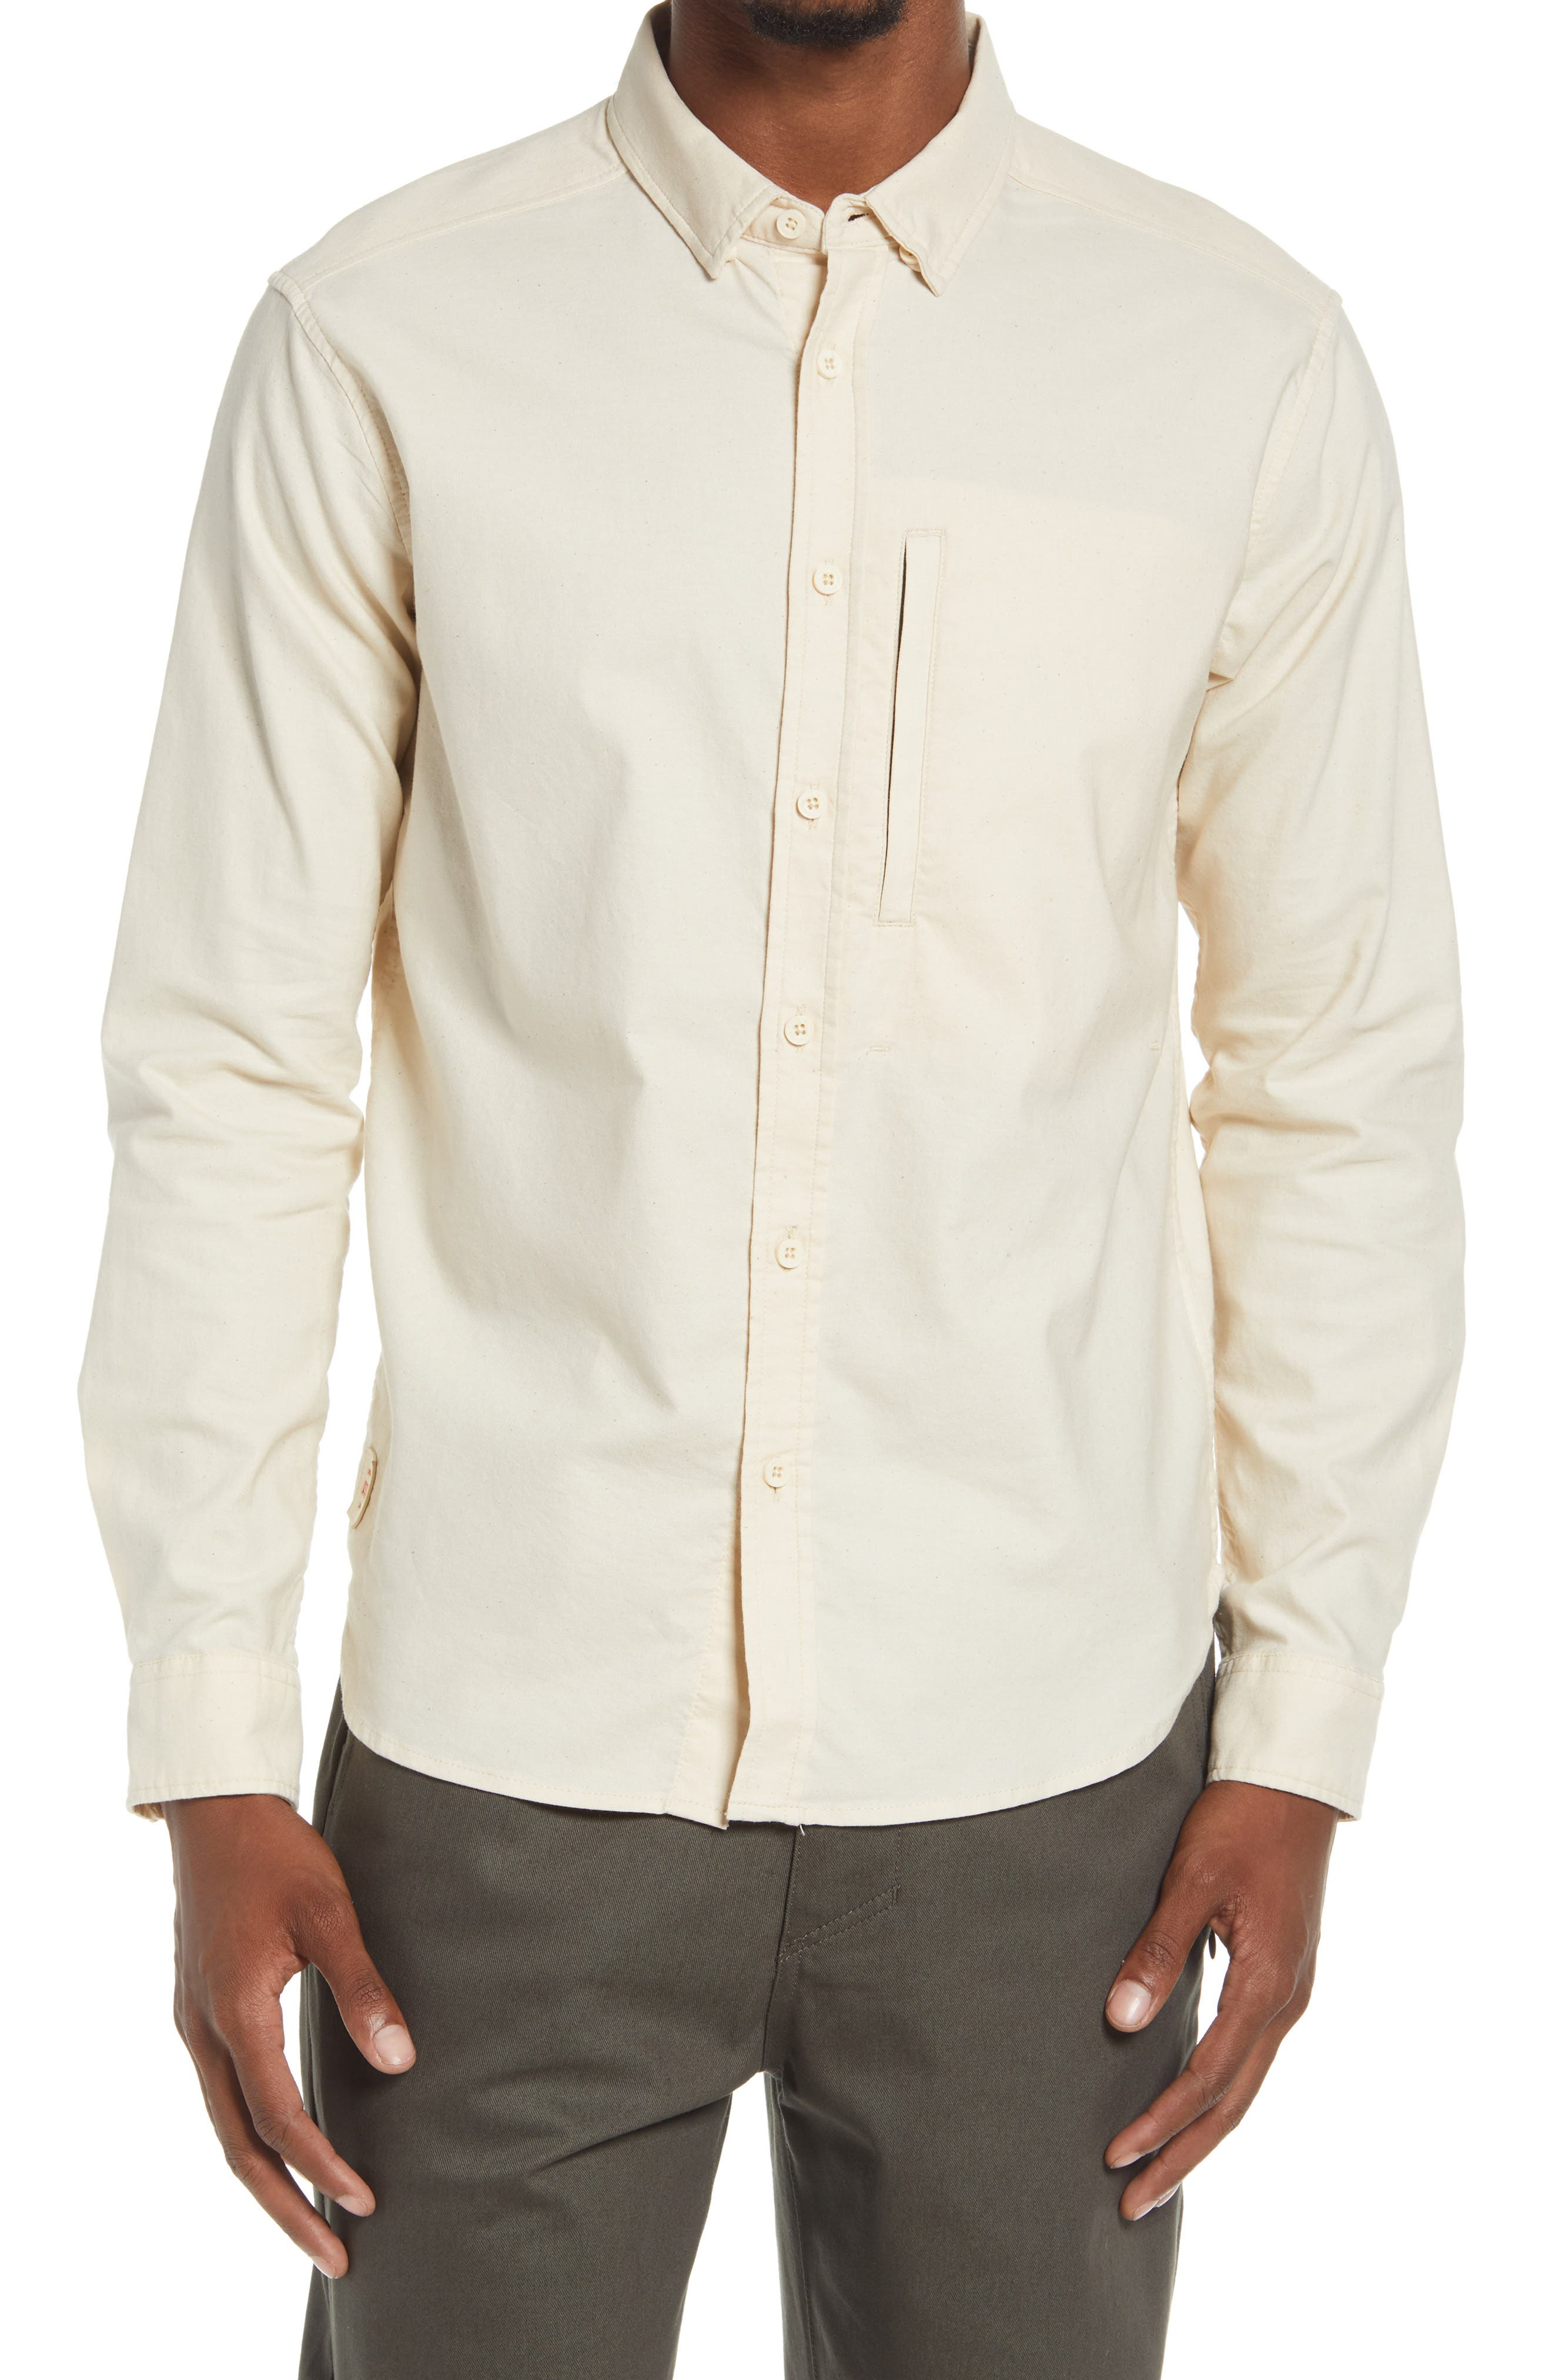 Foundation Button-Up Water Repellent Organic Cotton Shirt